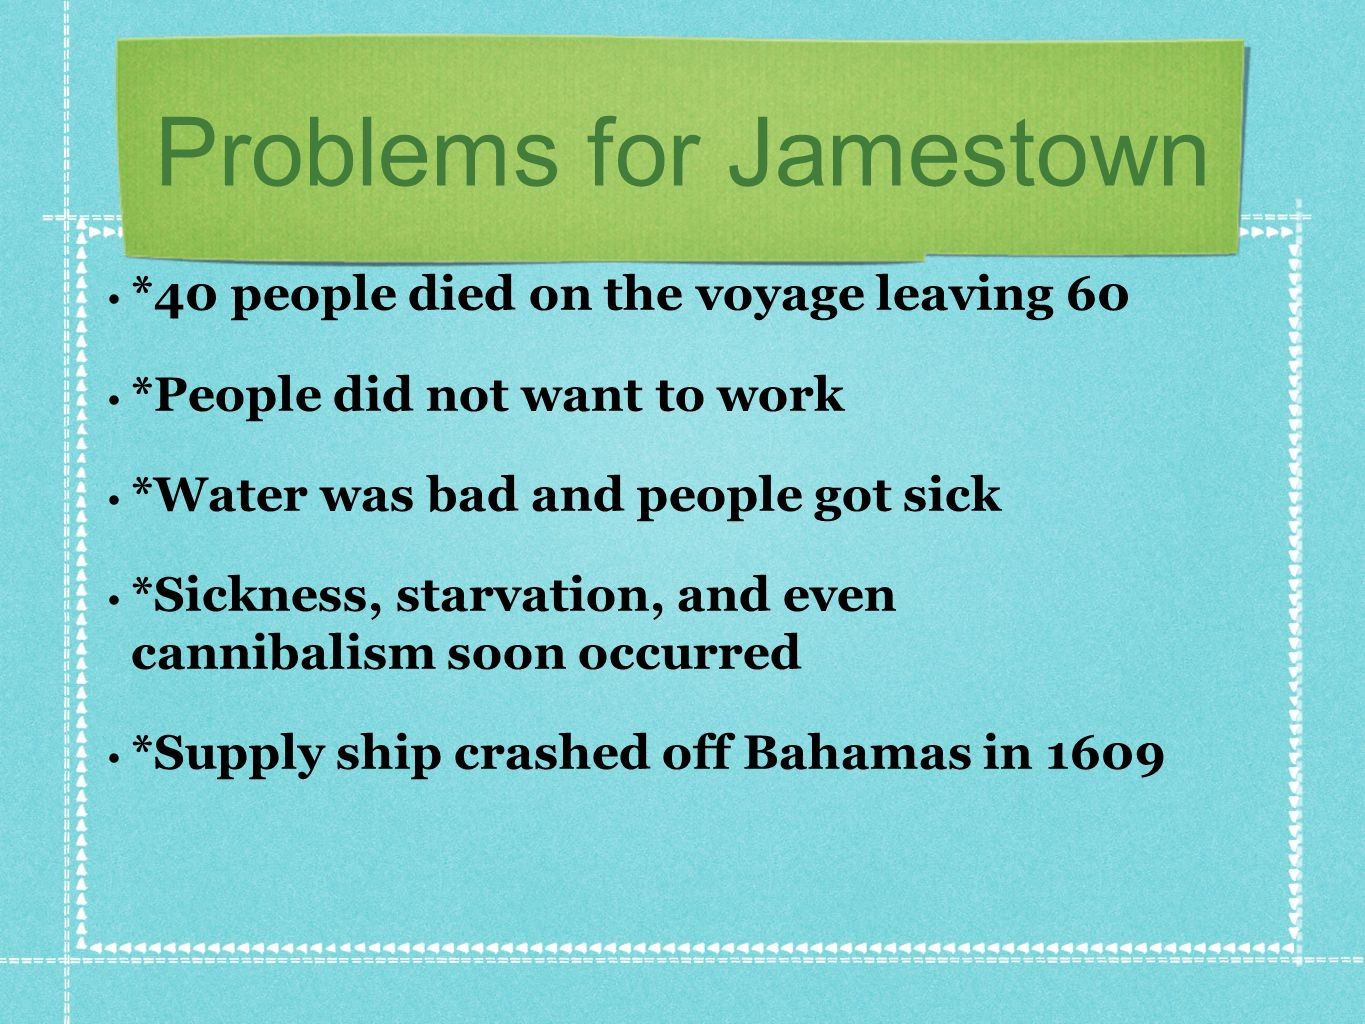 Problems for Jamestown